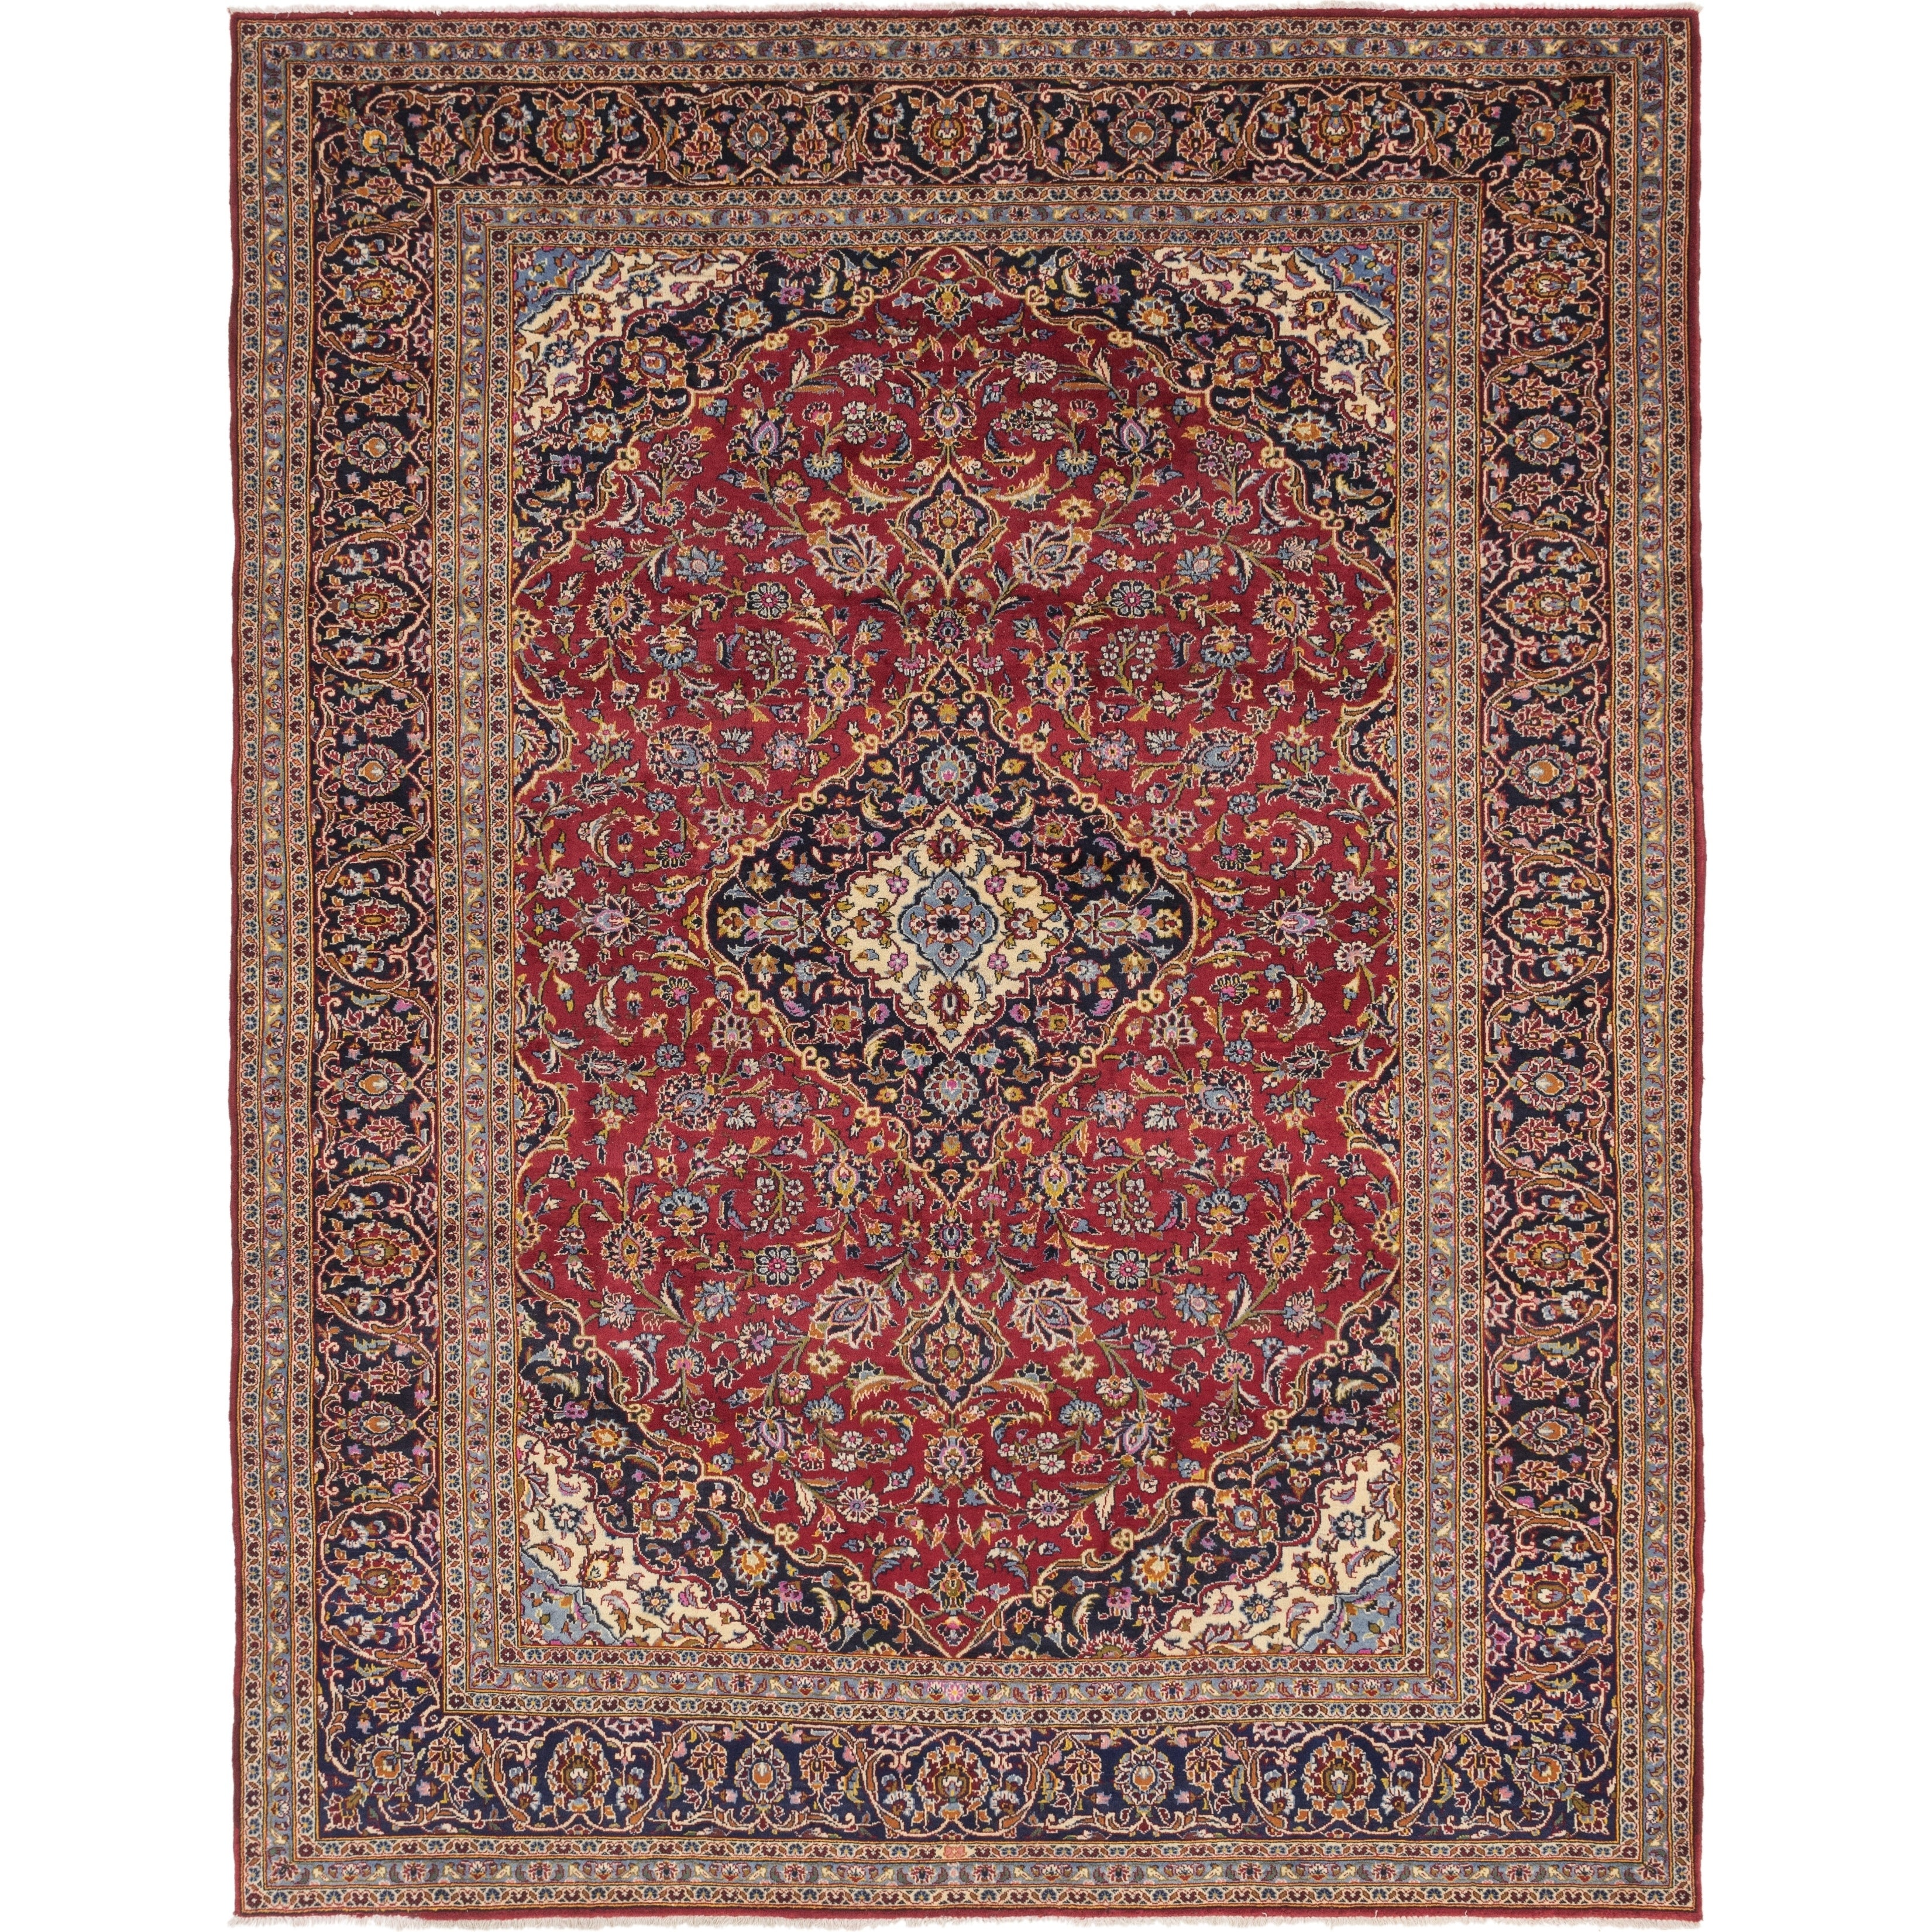 Hand Knotted Kashan Wool Area Rug - 10 x 12 10 (Red - 10 x 12 10)